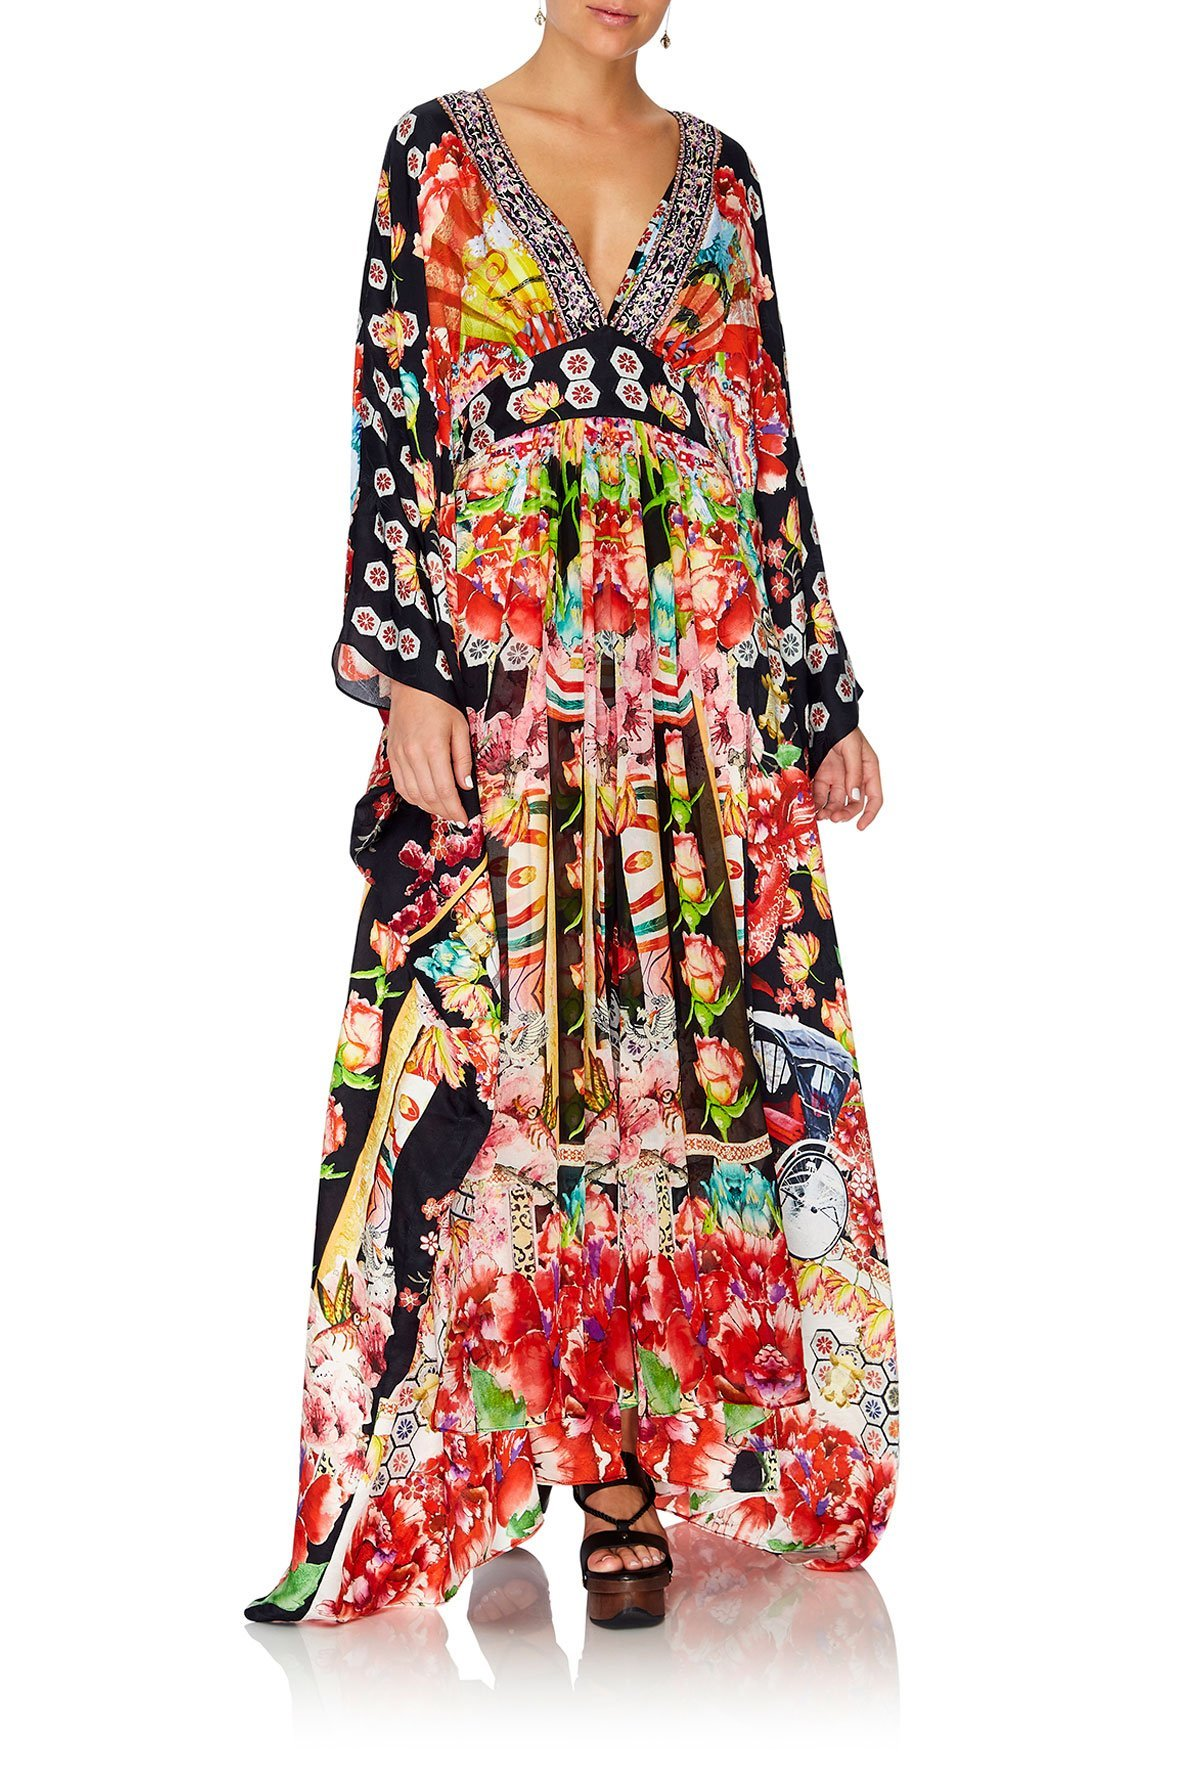 camilla_long_kaftan_with_waistabnd_painted_land_1_a378dbbe-4edc-4f77-9df1-e6478edbb02f_1024x1024@2x